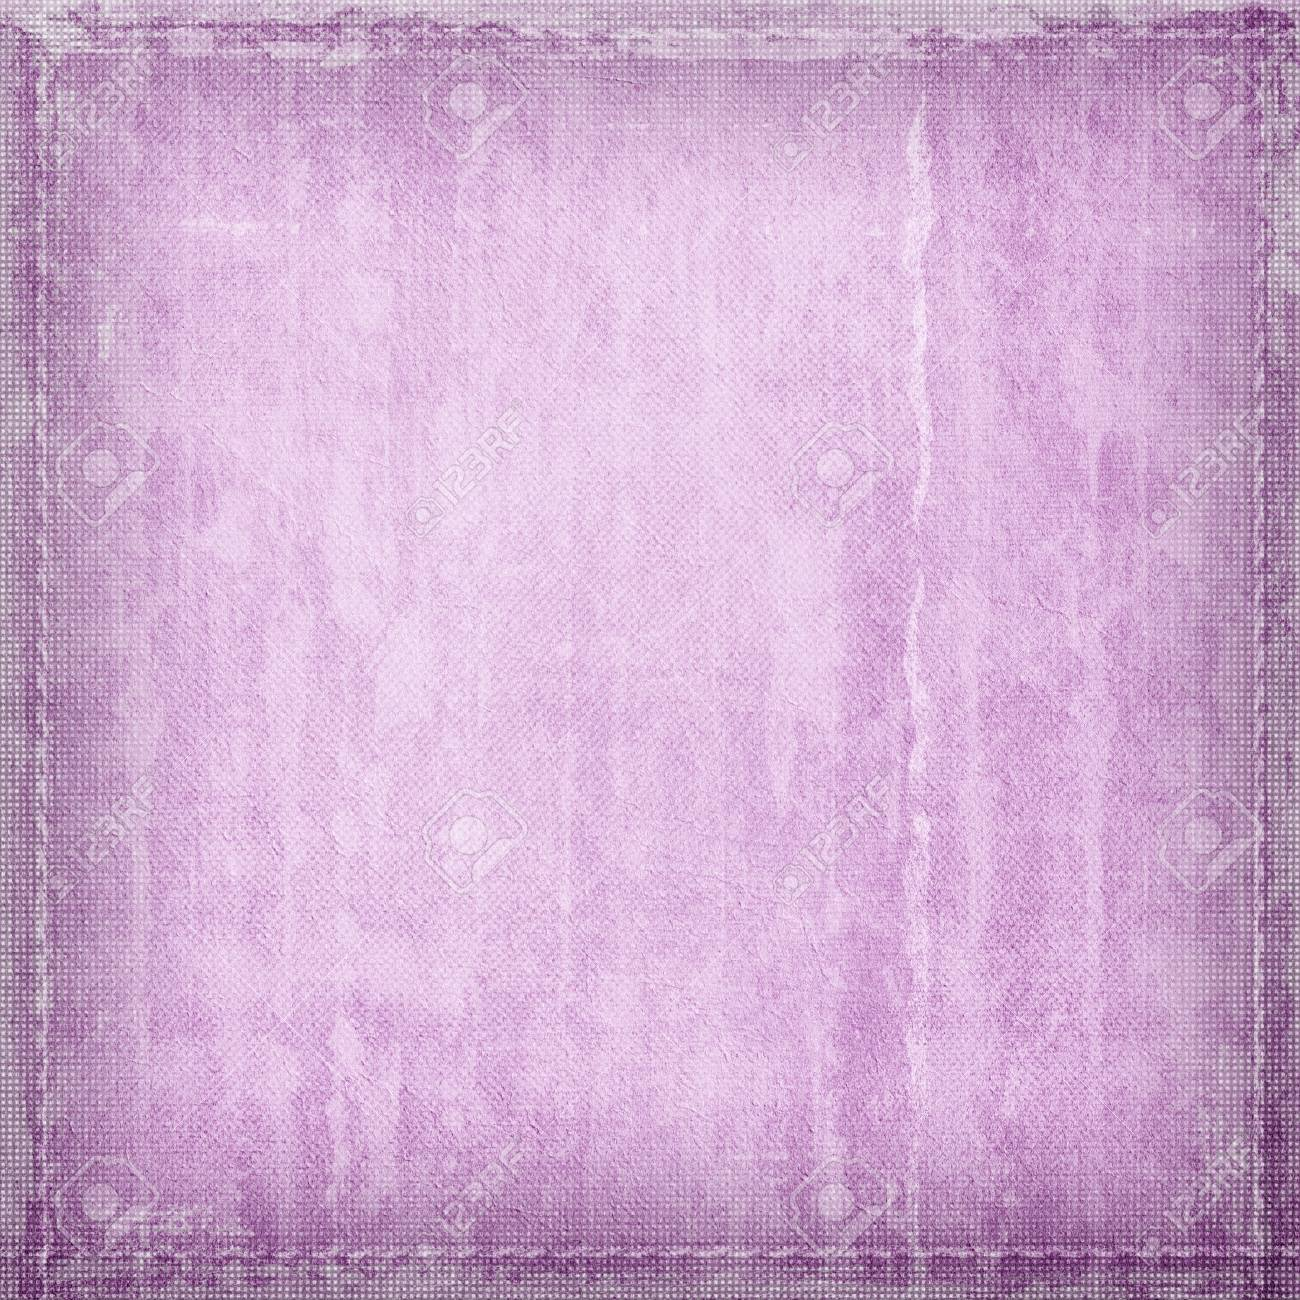 Grunge background or texture Stock Photo - 28960372